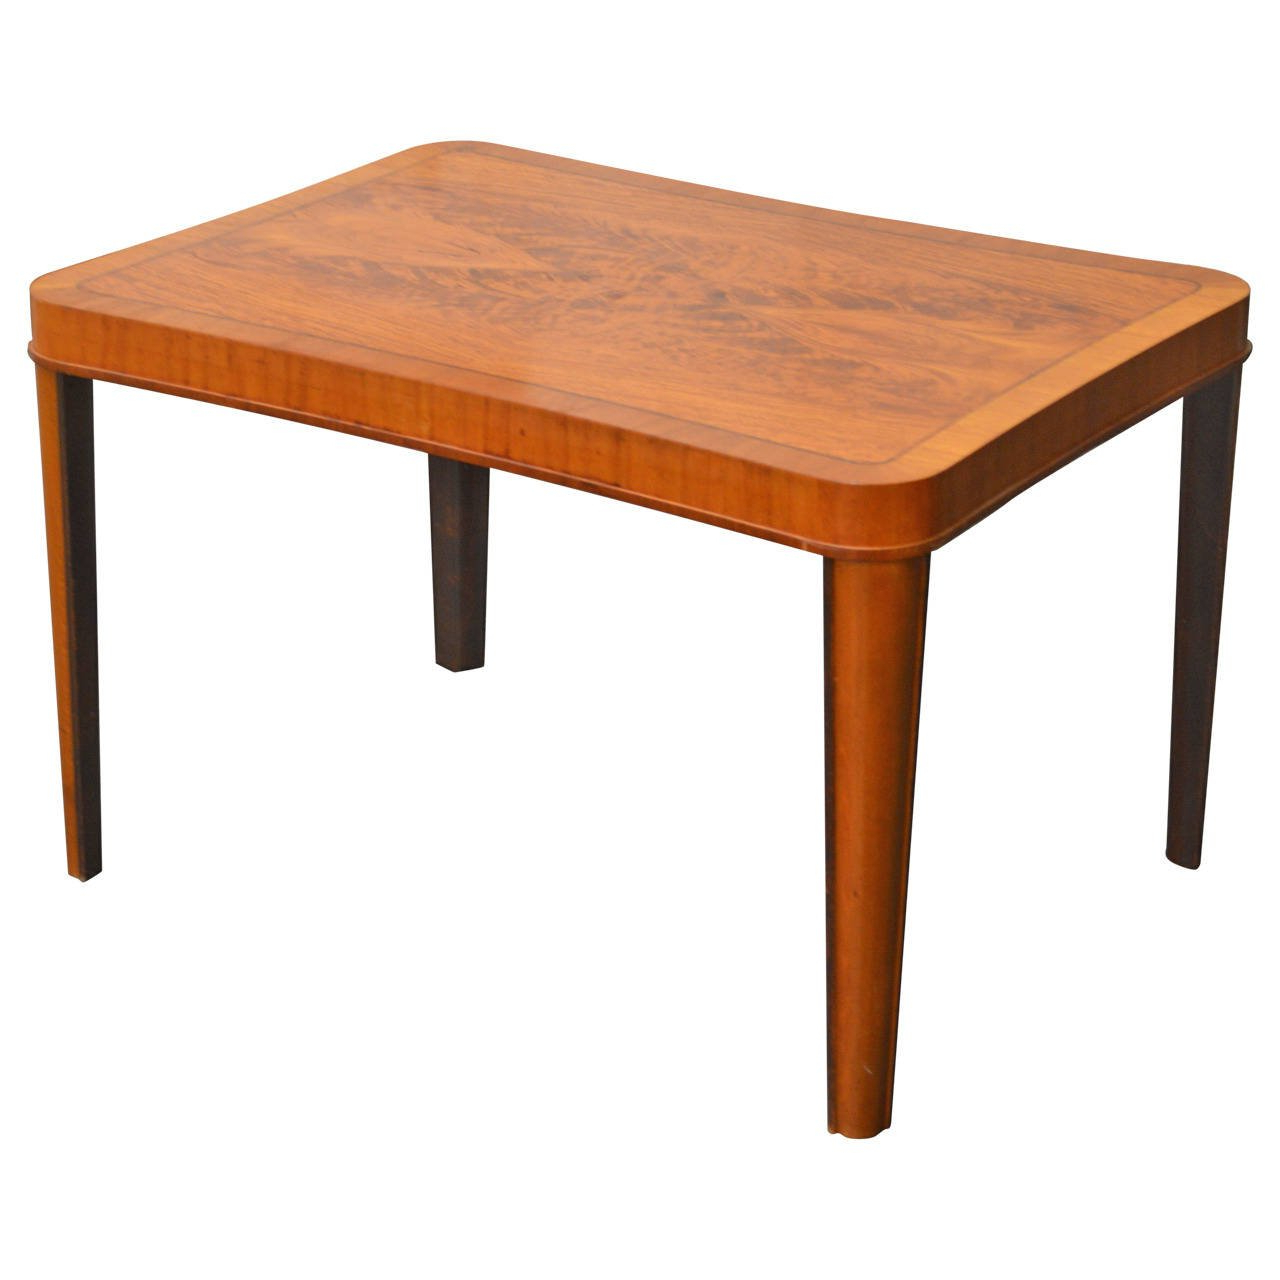 American Period Art Moderne Walnut Coffee Table For Sale At 1Stdibs Within Intarsia Console Tables (Gallery 5 of 20)